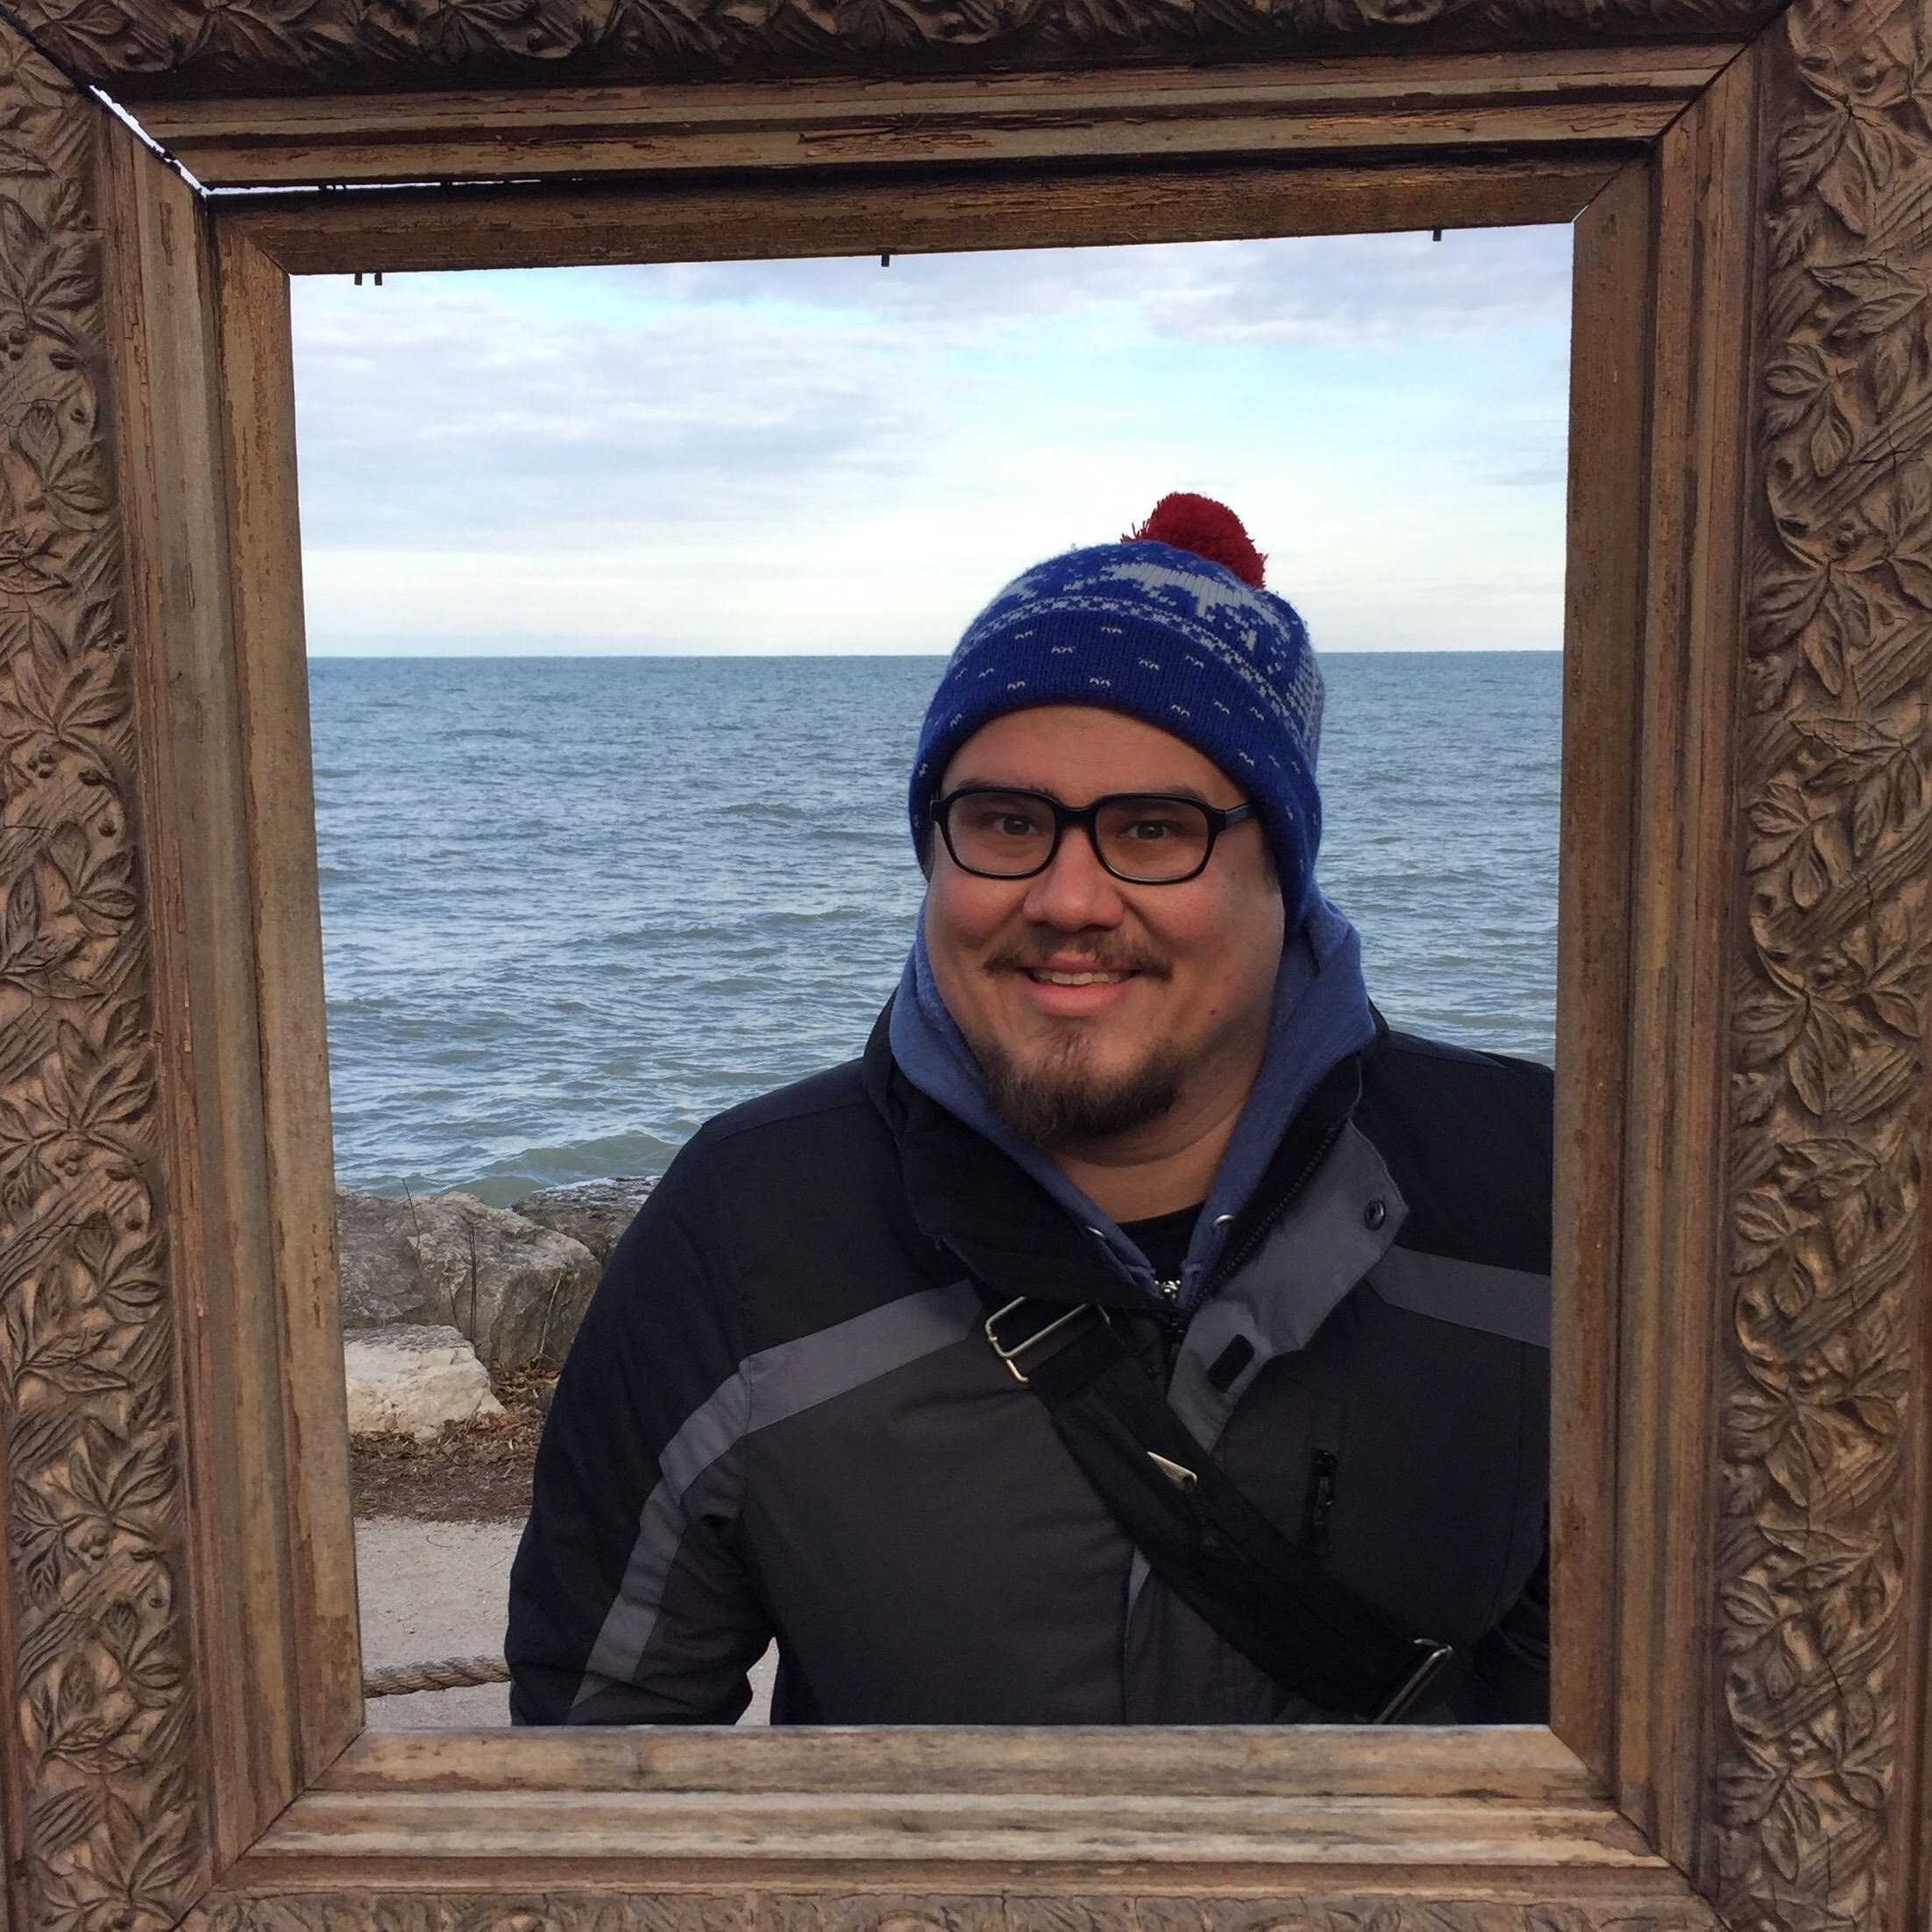 Tony smiling through a picture frame.